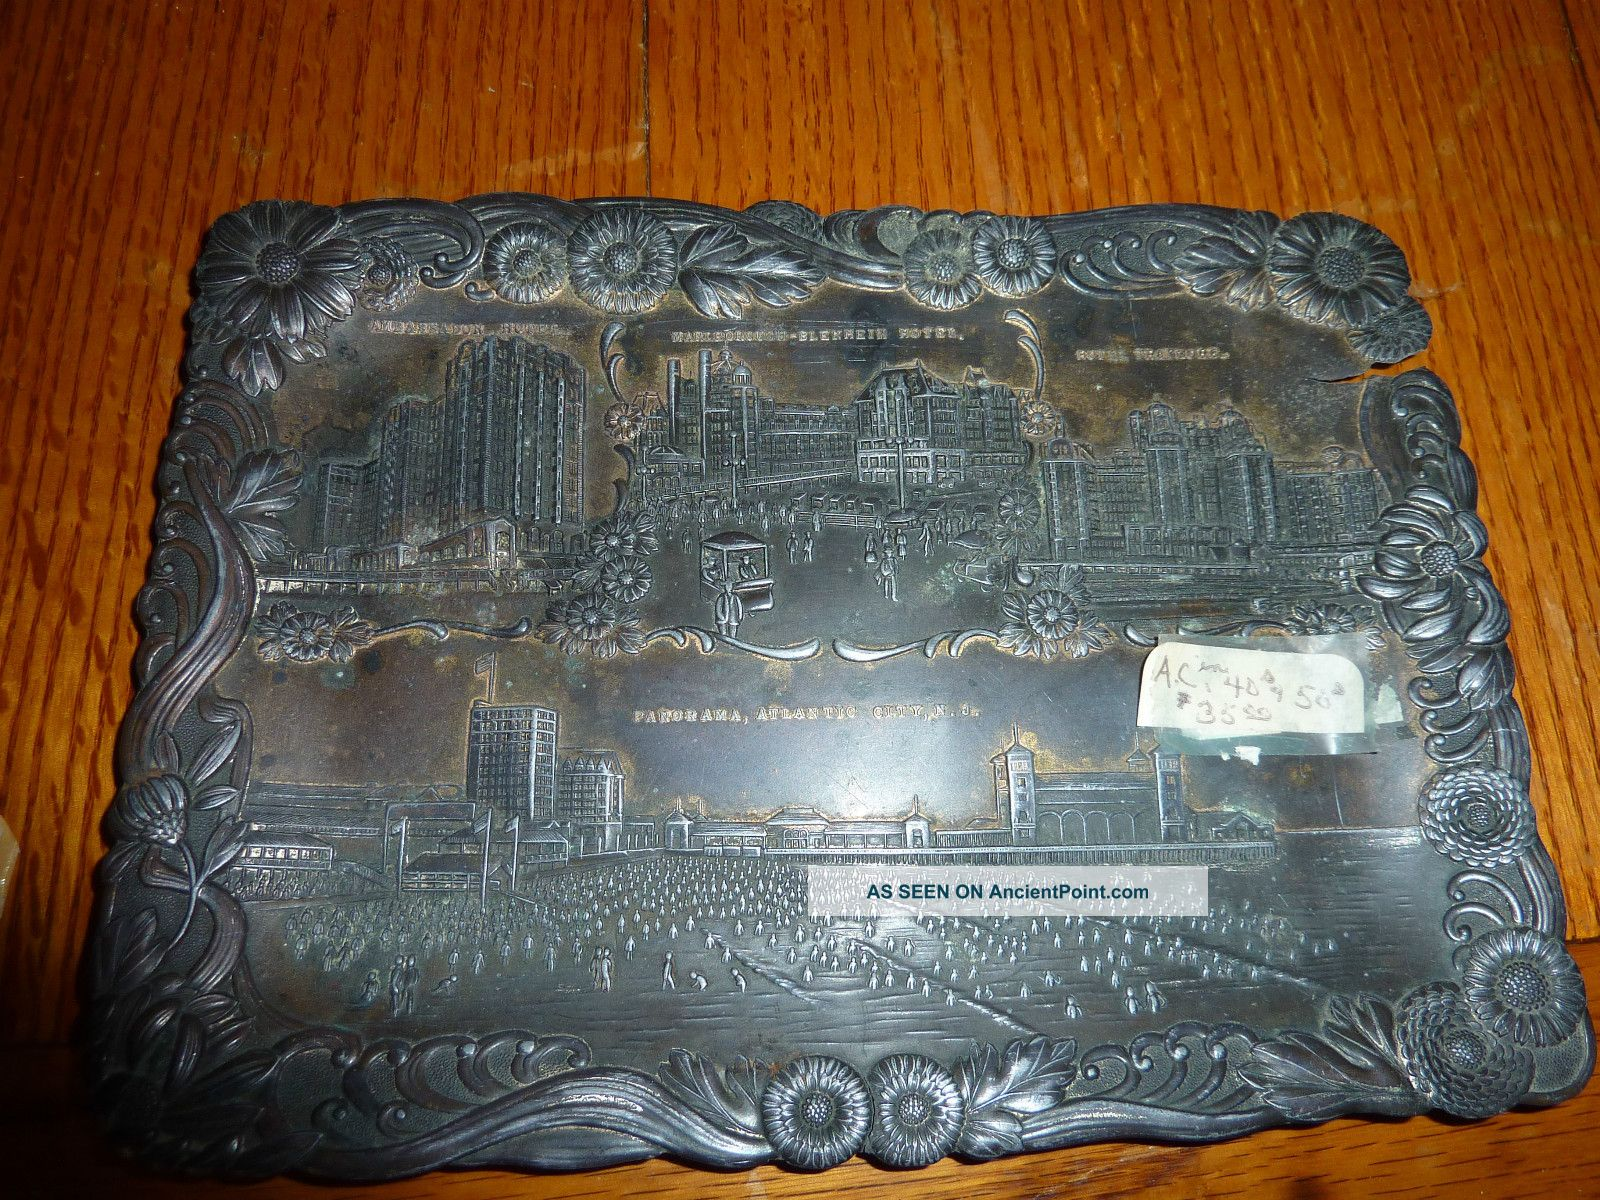 Vintage Atlantic City Souvenir Metal Tray,  Made In Japan For Ac Bosselmann Metalware photo